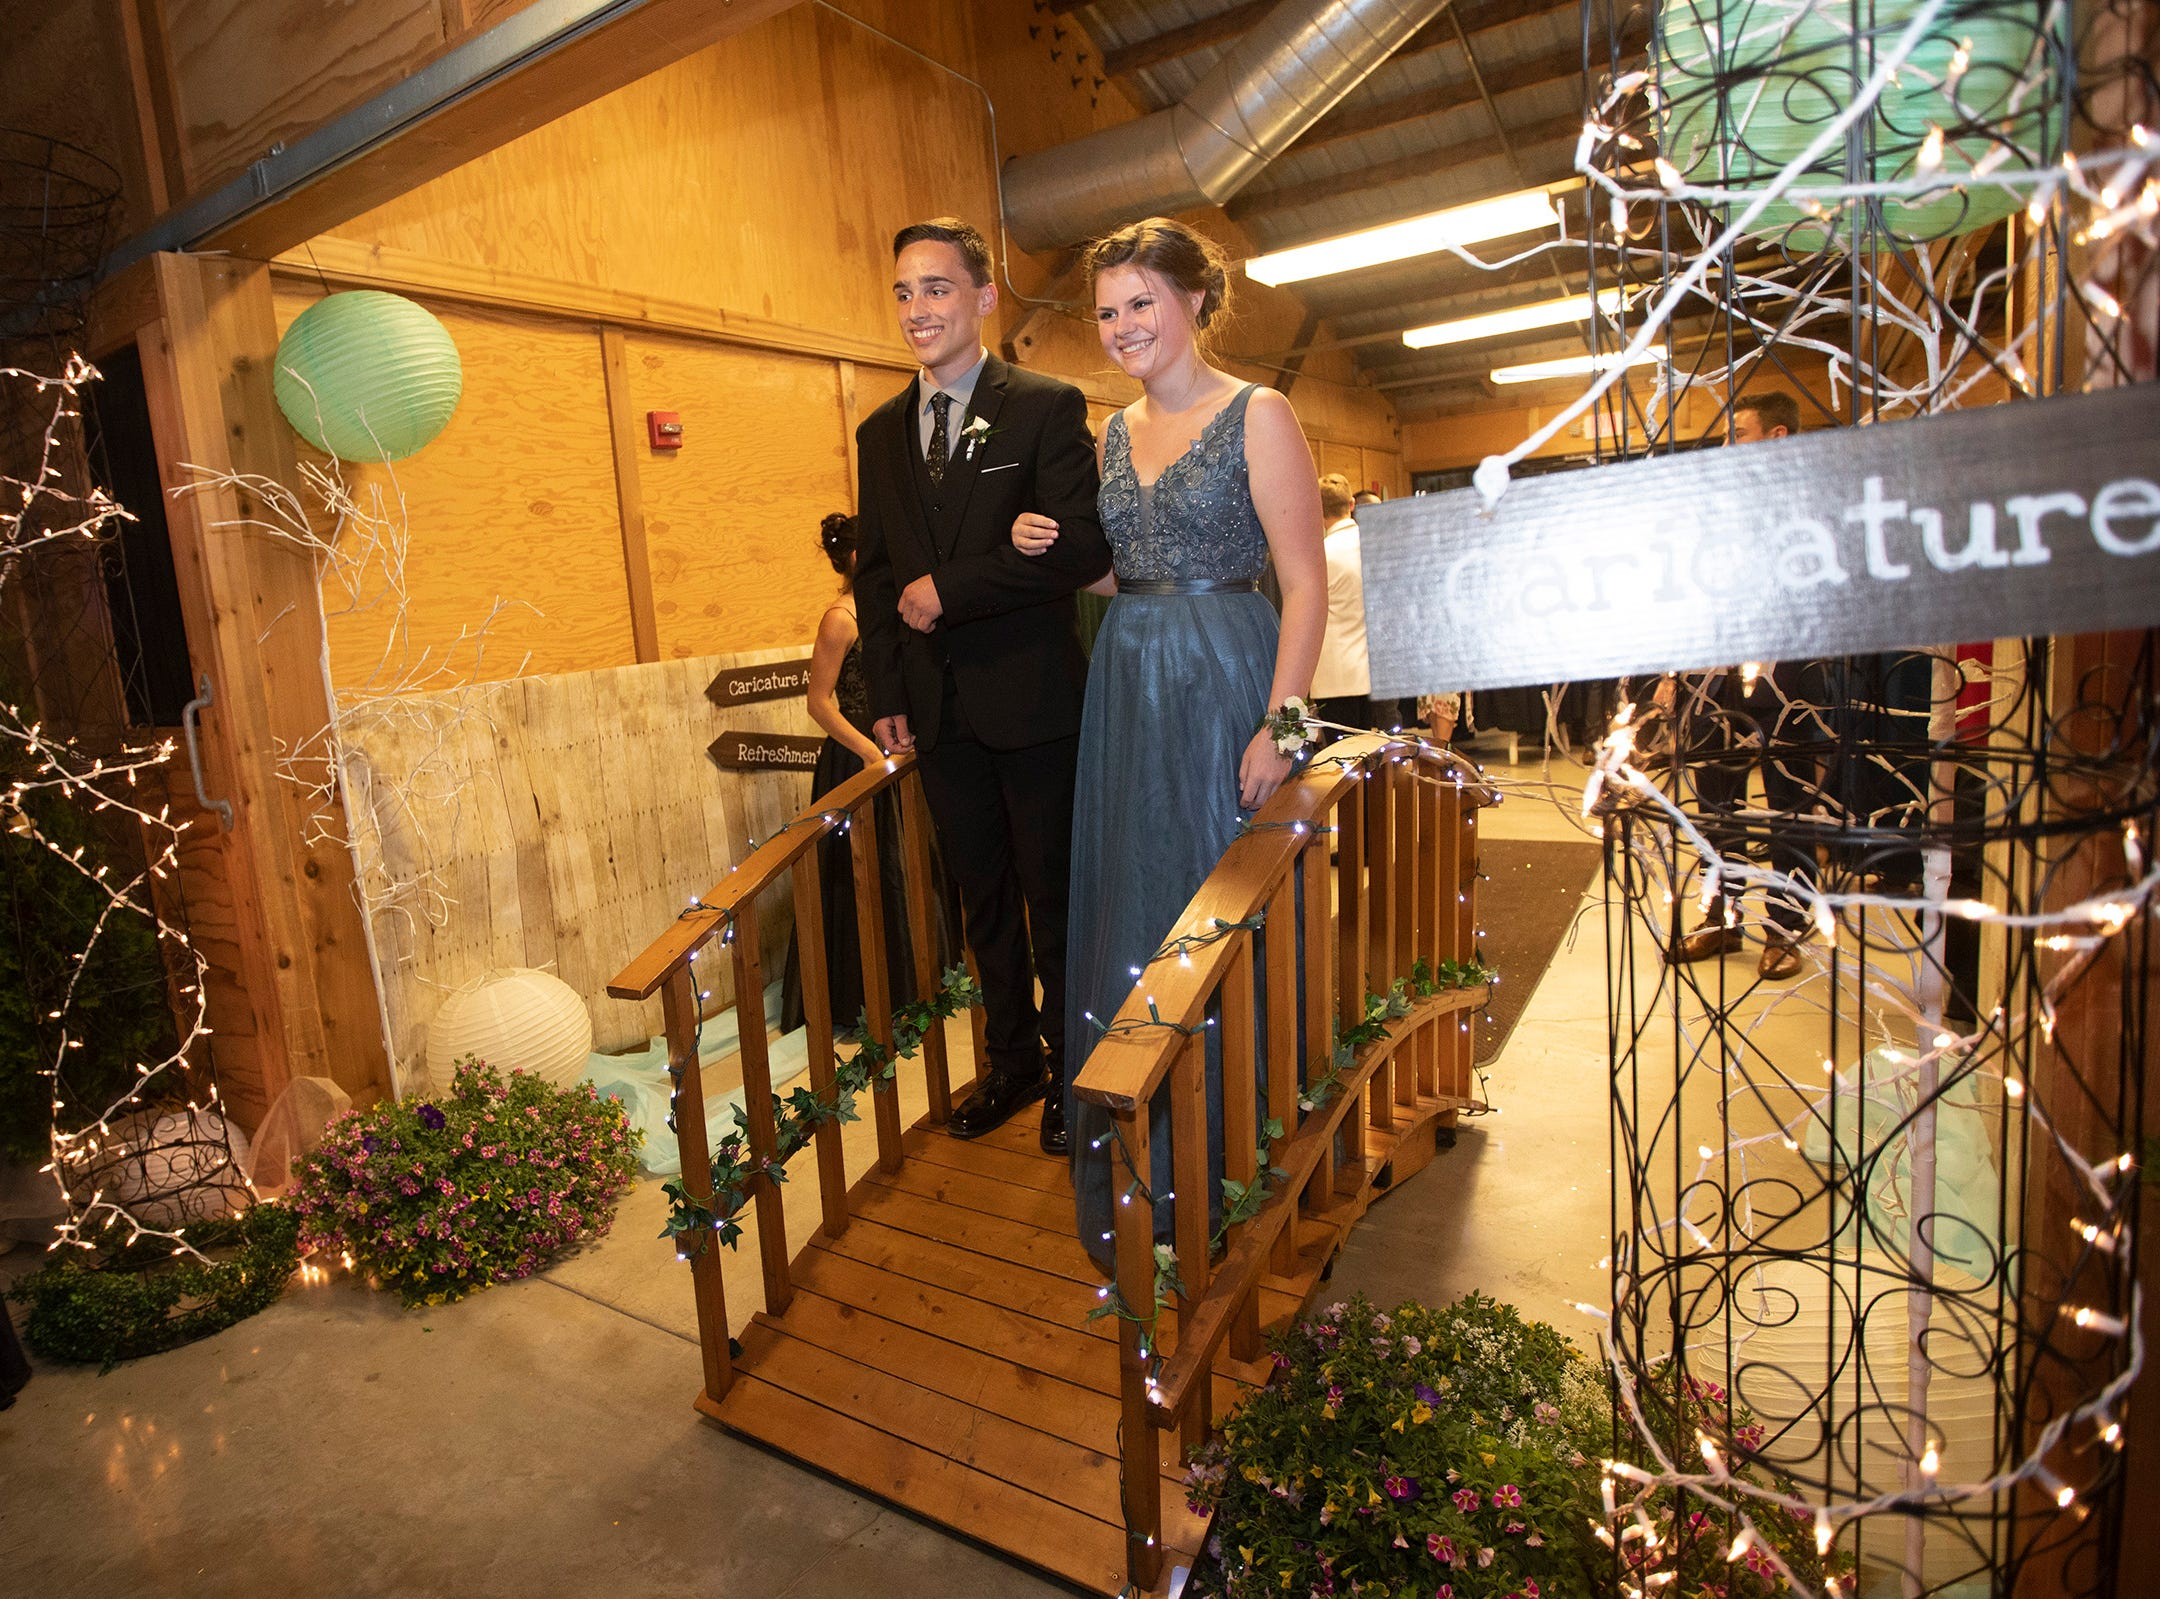 Zachary Stutzman, 17, and Taylor Schornstein, 17, pose for a photo while walking into the Silverton High School  prom at the Oregon Garden on Saturday, May 11.